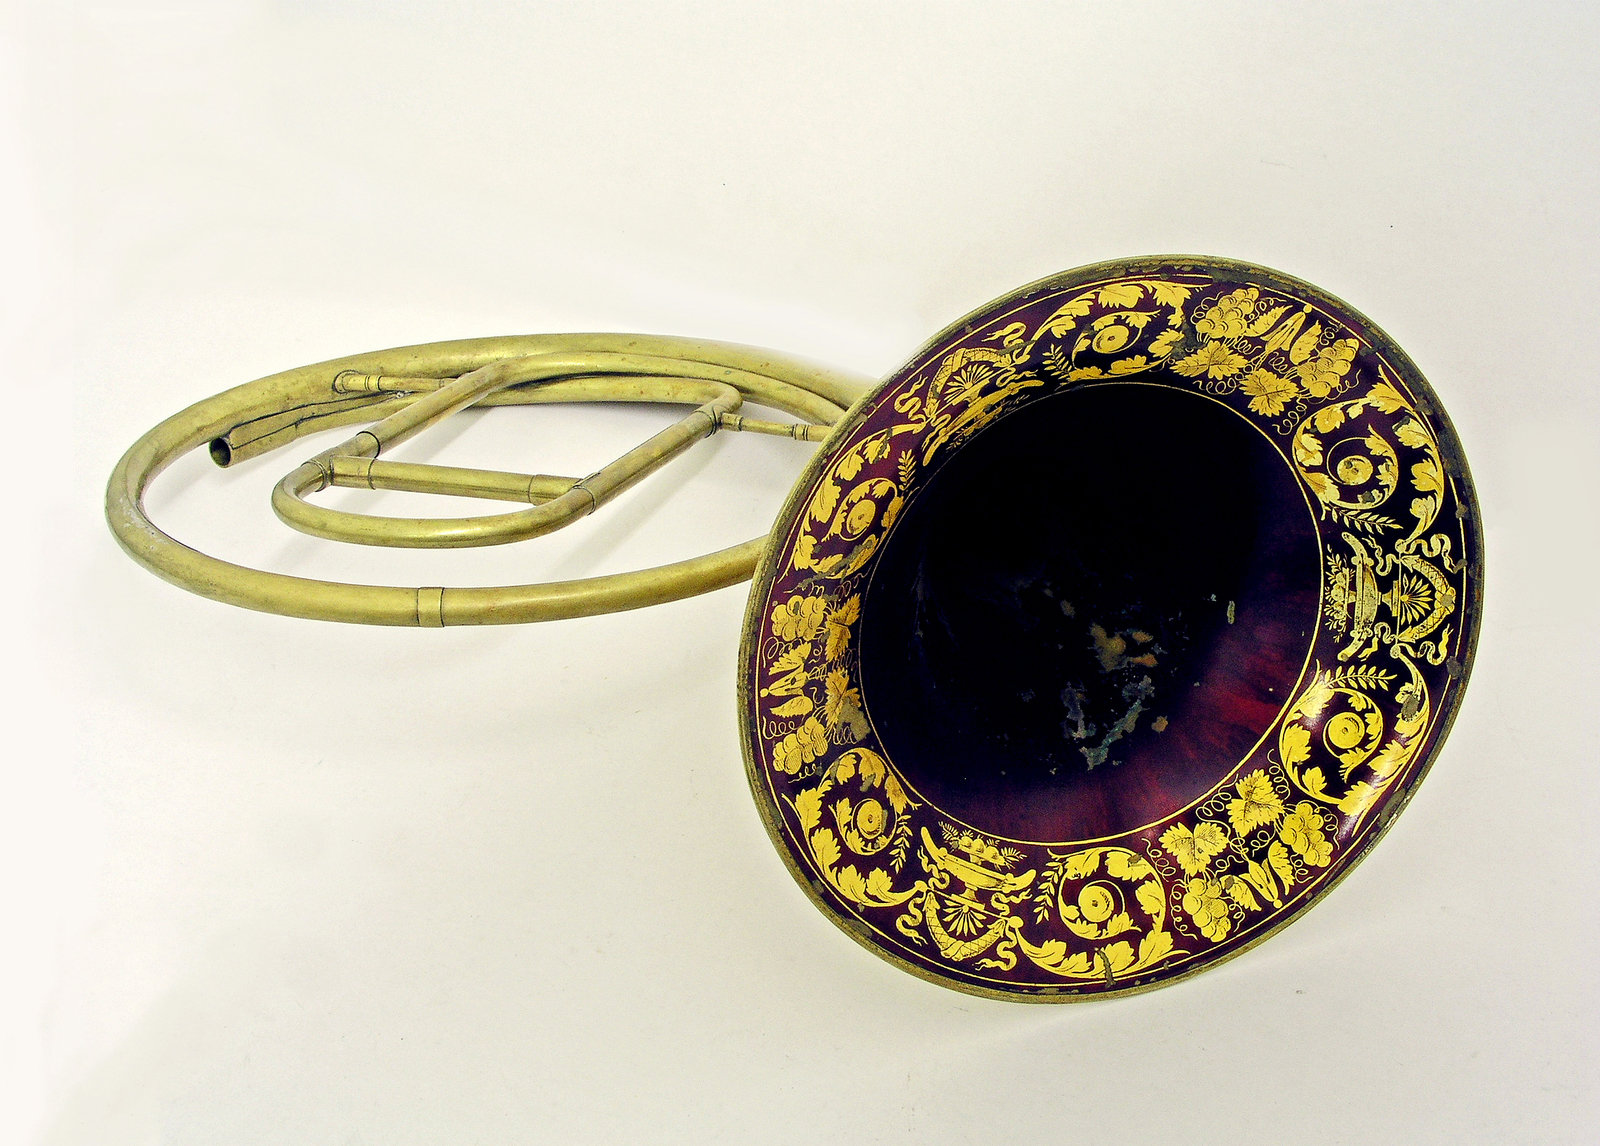 Hand Held French Horn, c.1840, Courtois neveu, [This is a typical orchestral horn of the early nineteenth century with crooks (not shown) to allow it to play in the most common tonalities. It is played with the hand in the bell. The lacquer decoration of the bell was common in France at that time.], University of Edinburgh, CC BY-NC-SA